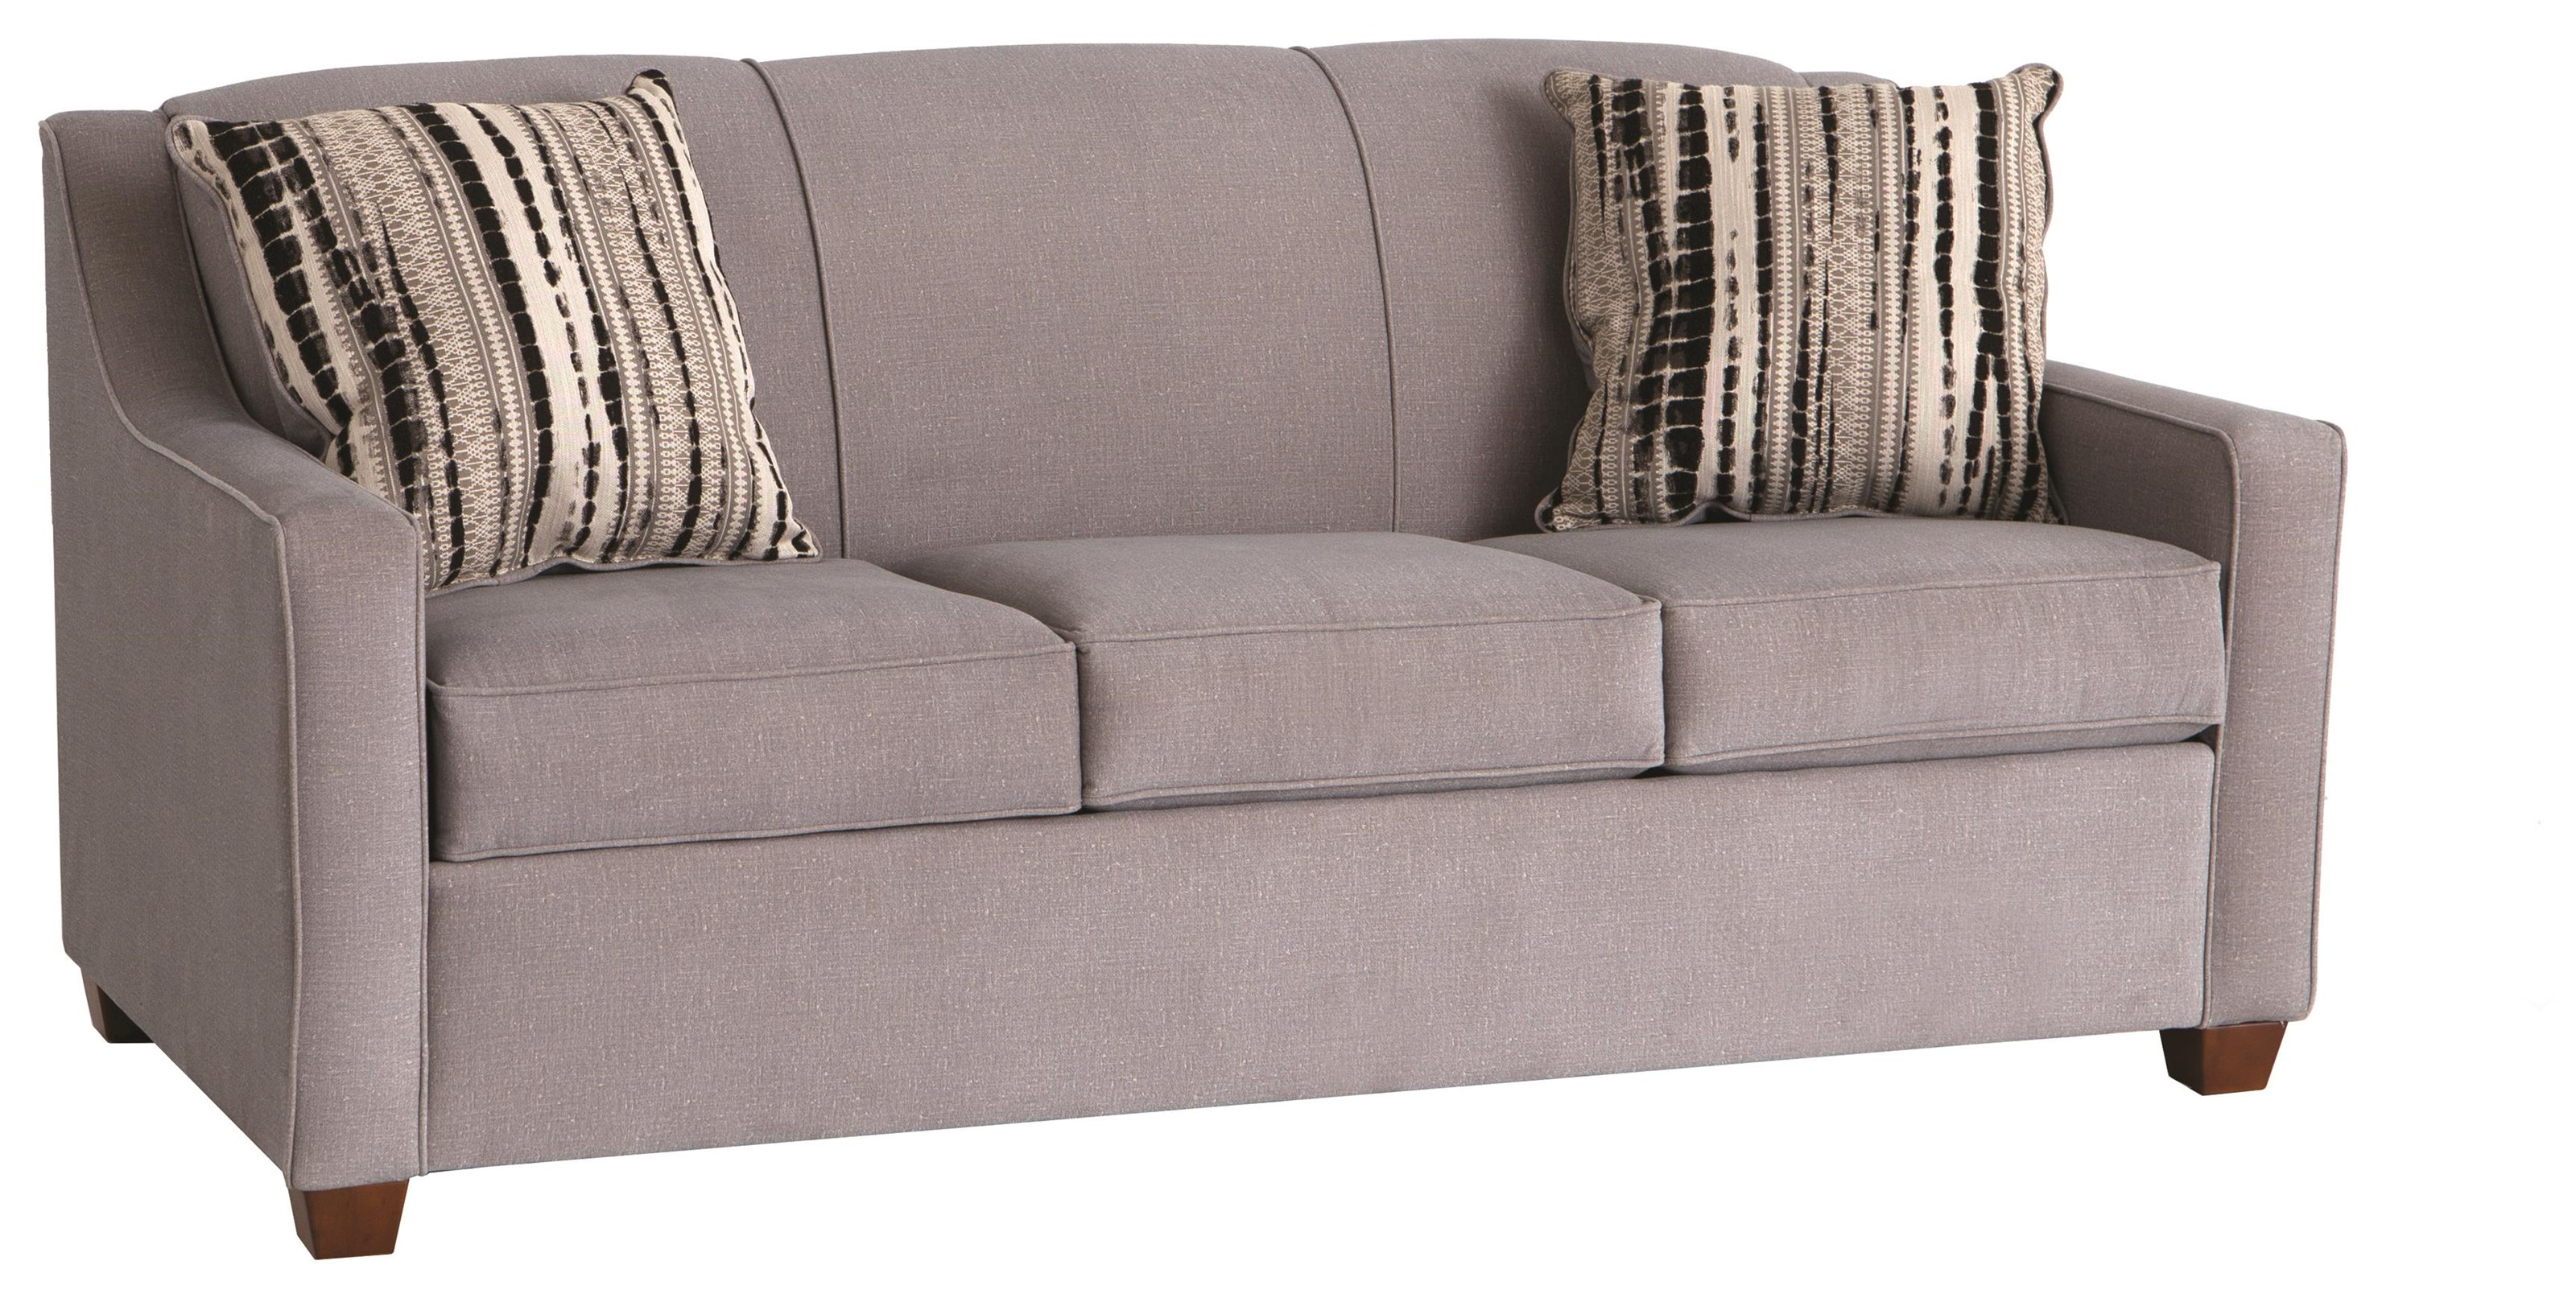 alaina sofa bed queen sleeper with storage singapore furniture sofas beds biltrite